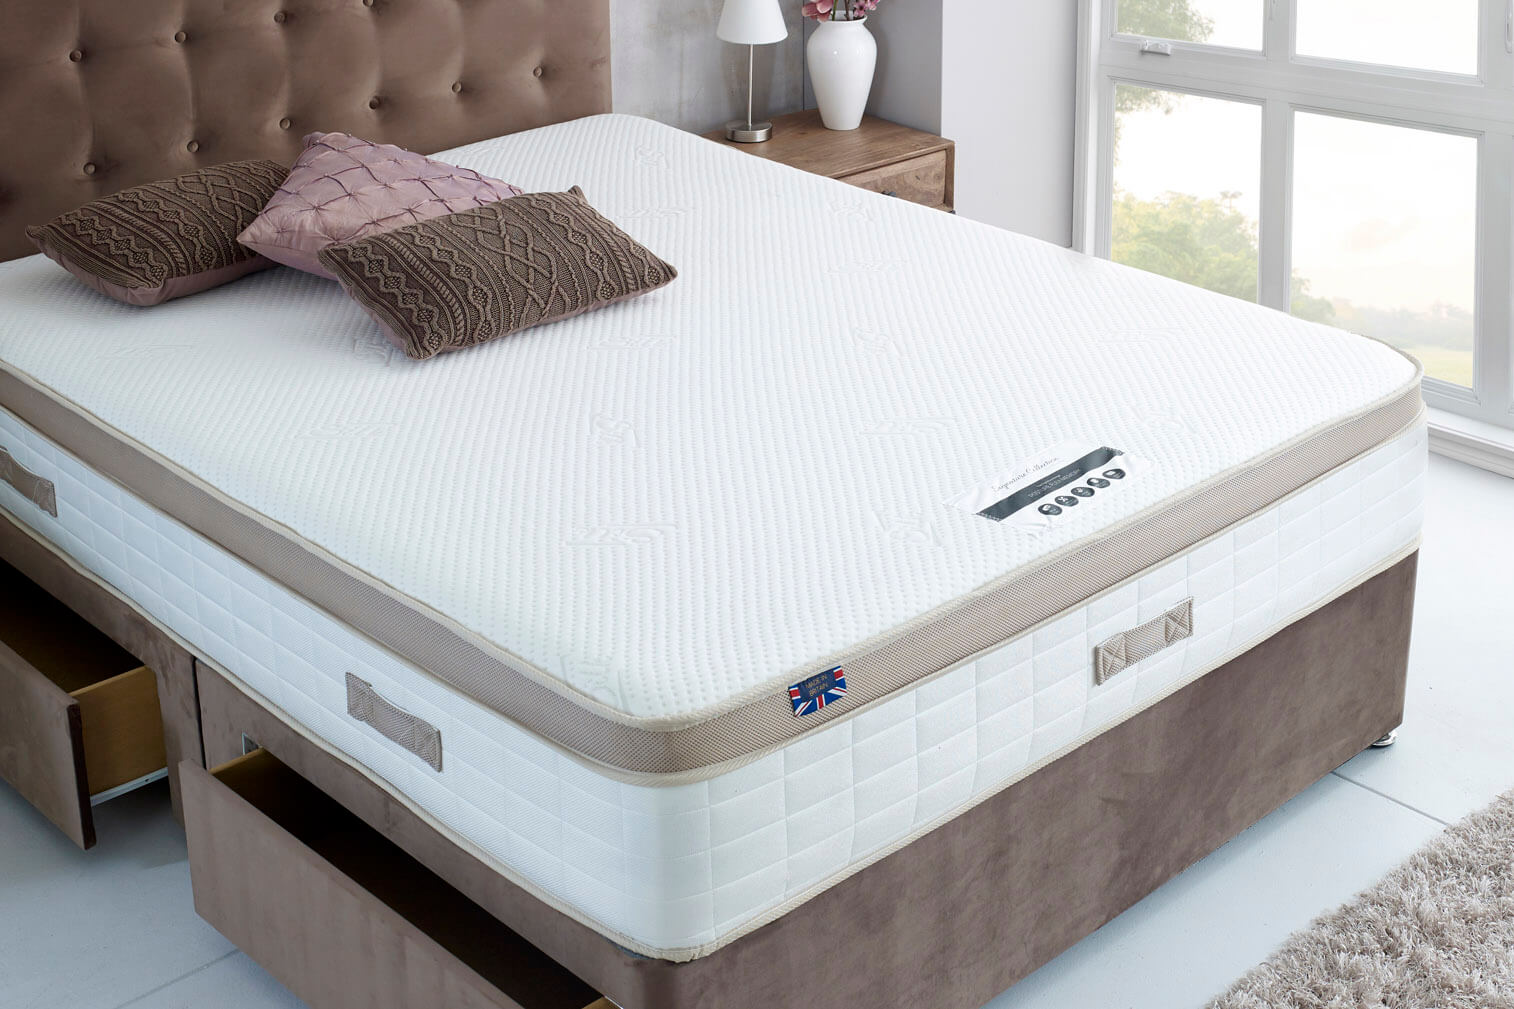 Posture Flex Foam & Memory Foam Orthopaedic Mattress-Single